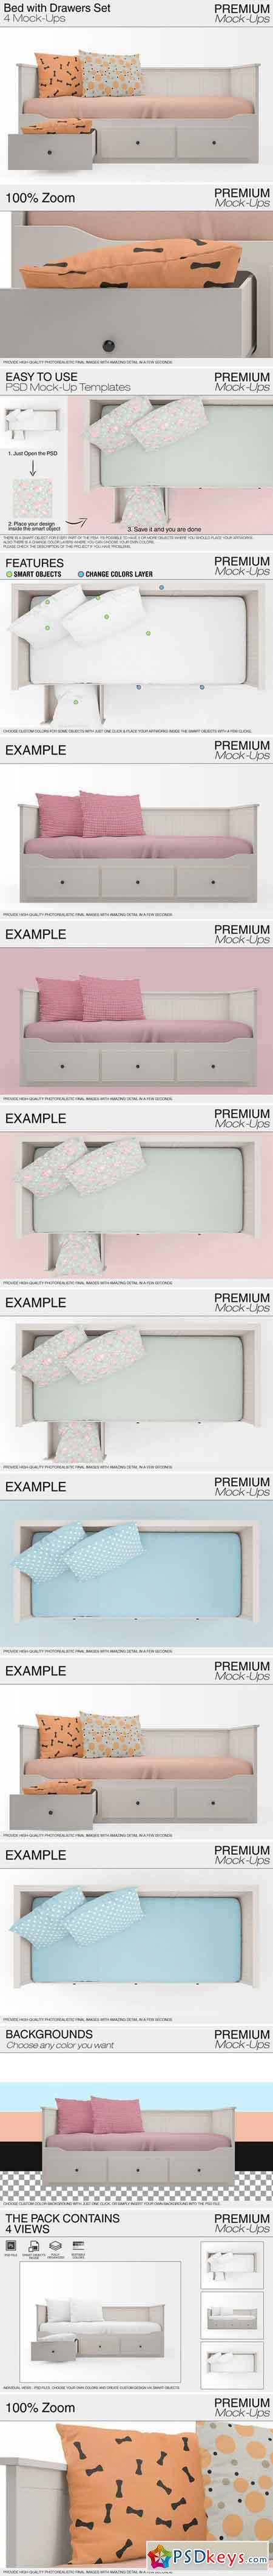 Bed with Drawers Mockup Pack 2043092